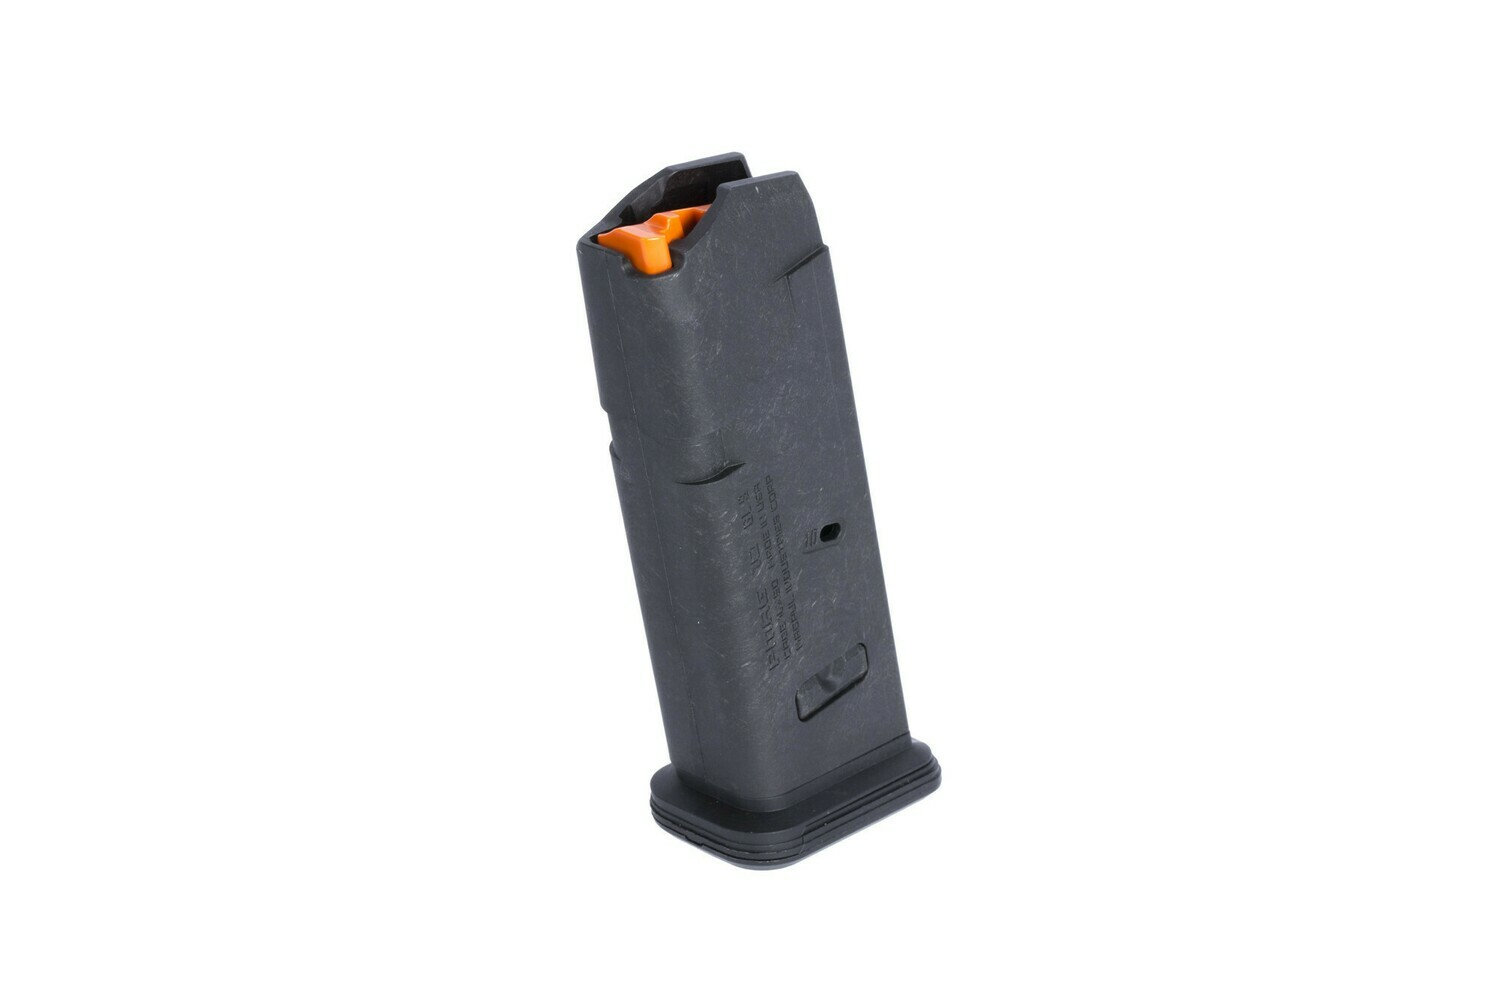 Magpul GL9 PMAG 15rd Glock G19 Compatible Magazine 9mm - Black